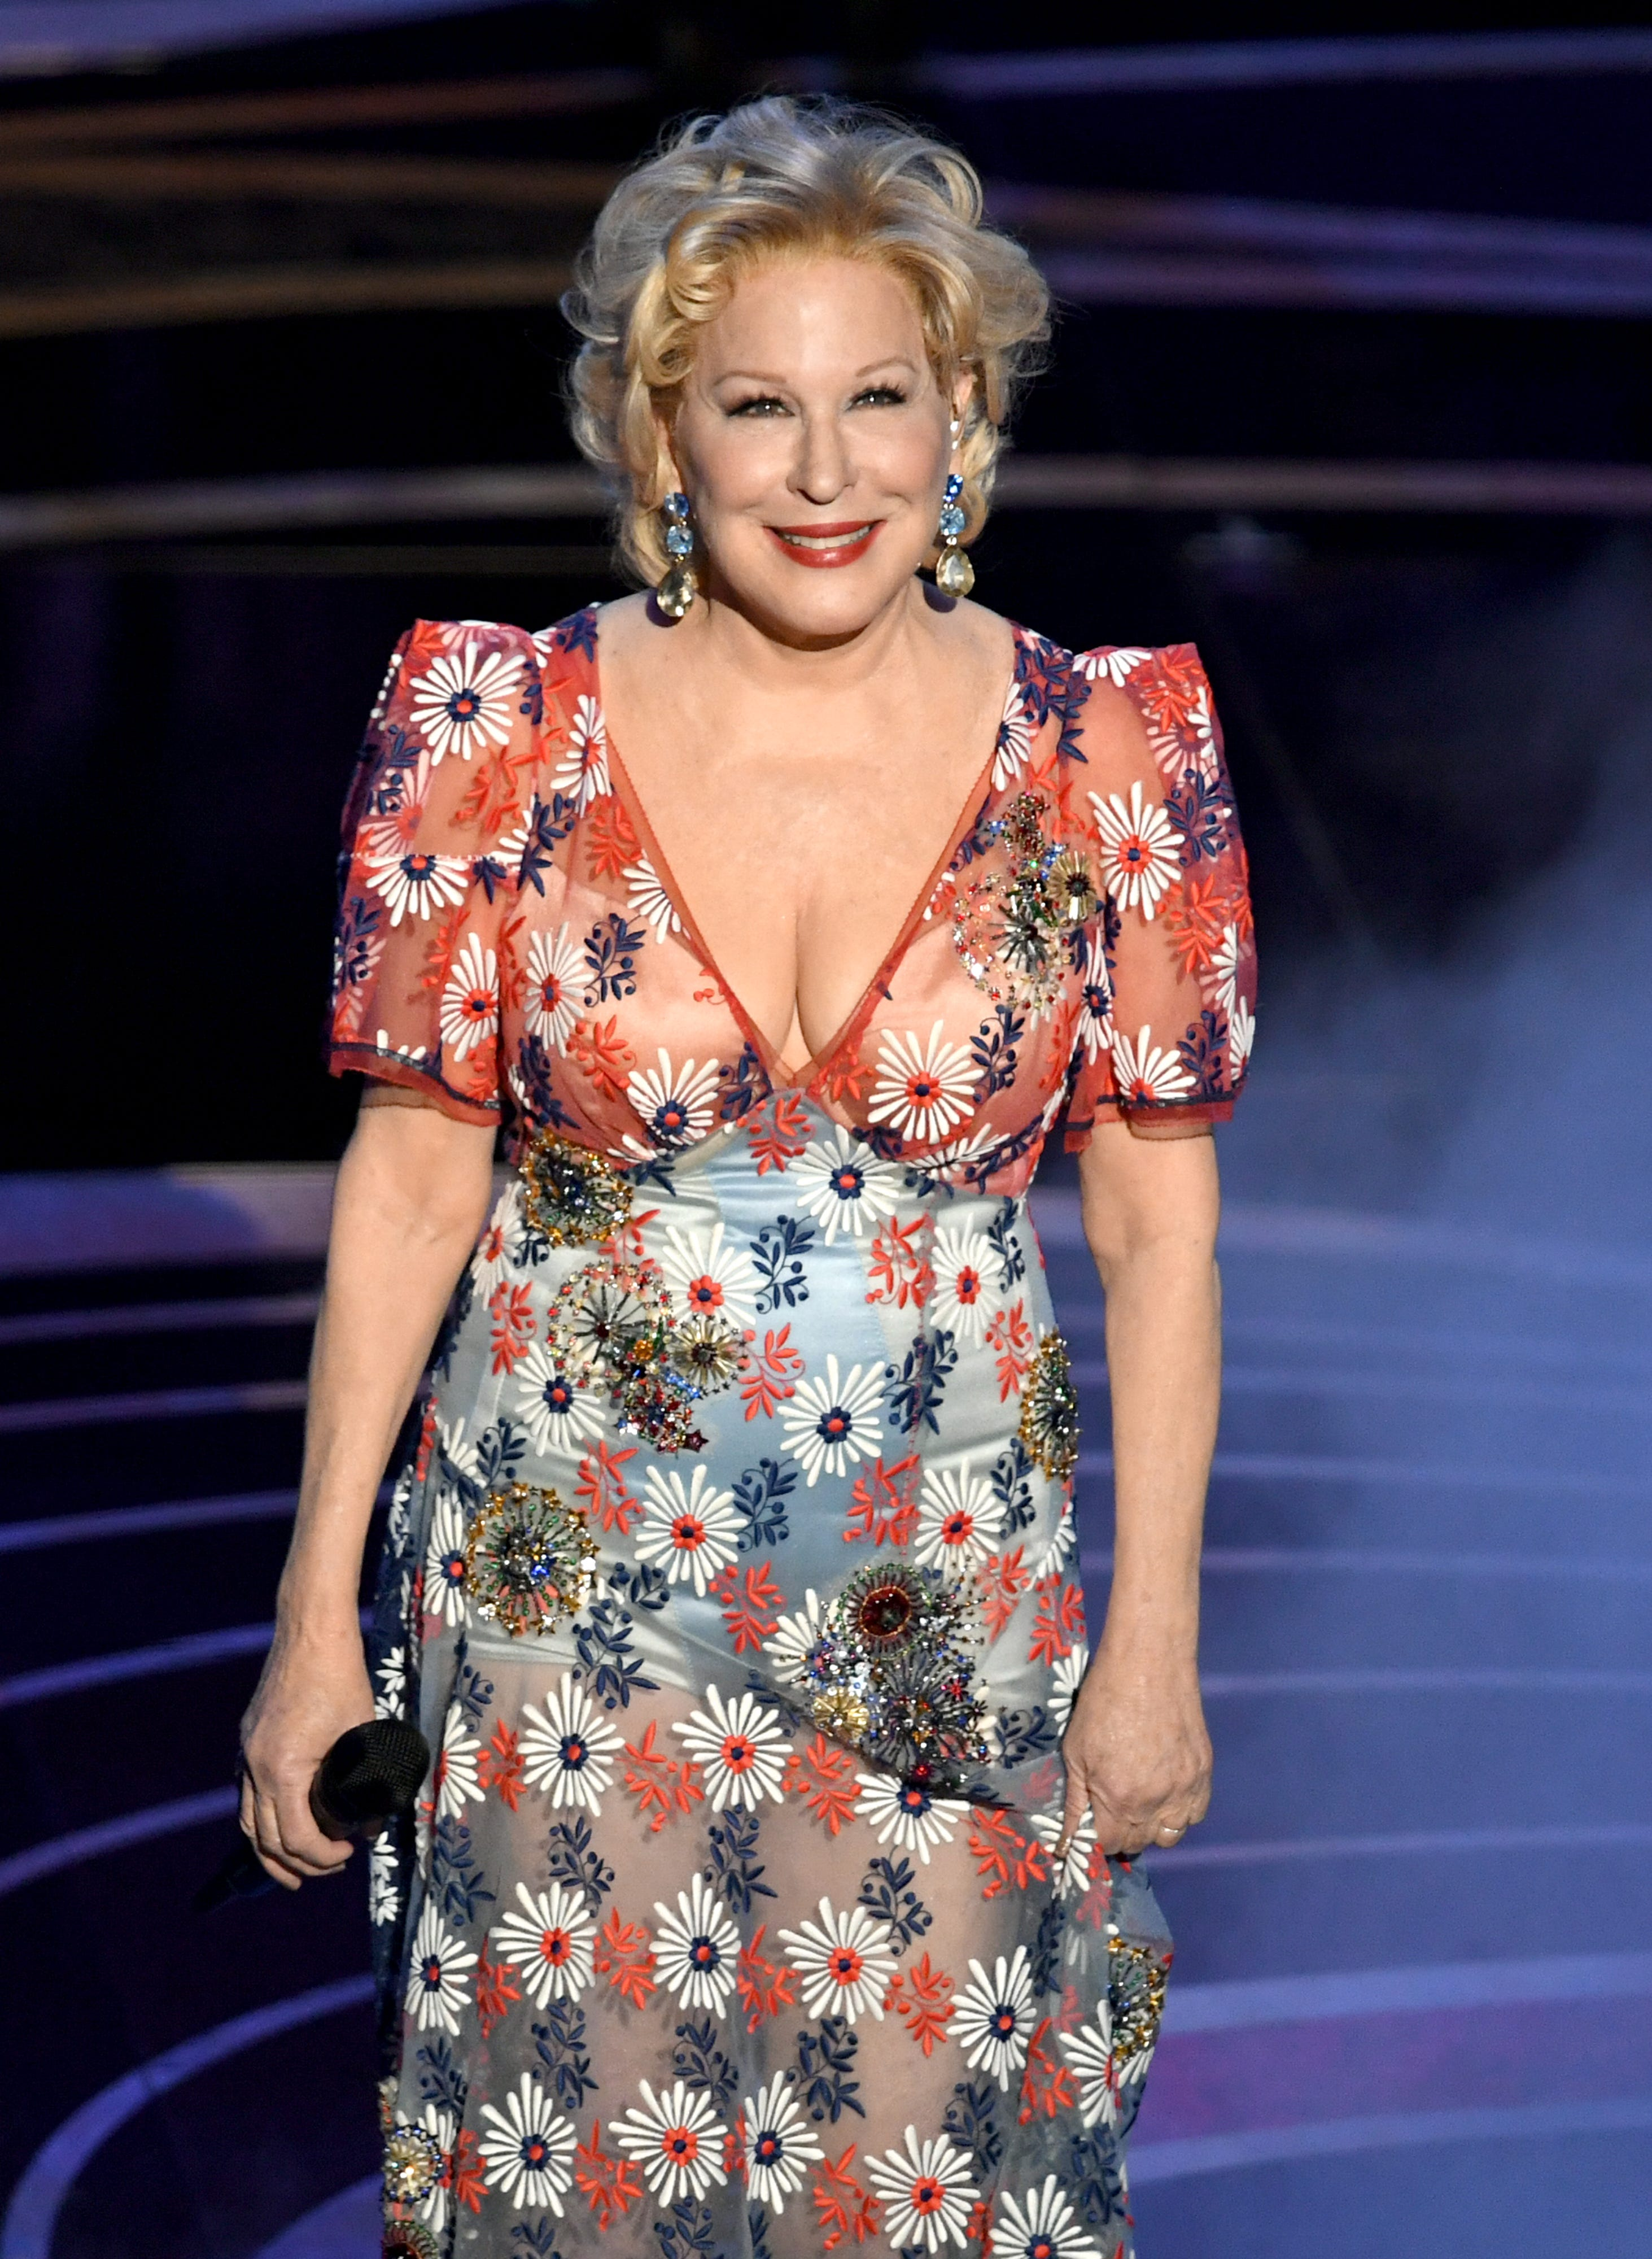 Bette Midler reacts to Mueller report: 'Two more years of chaos, race-baiting' under Trump